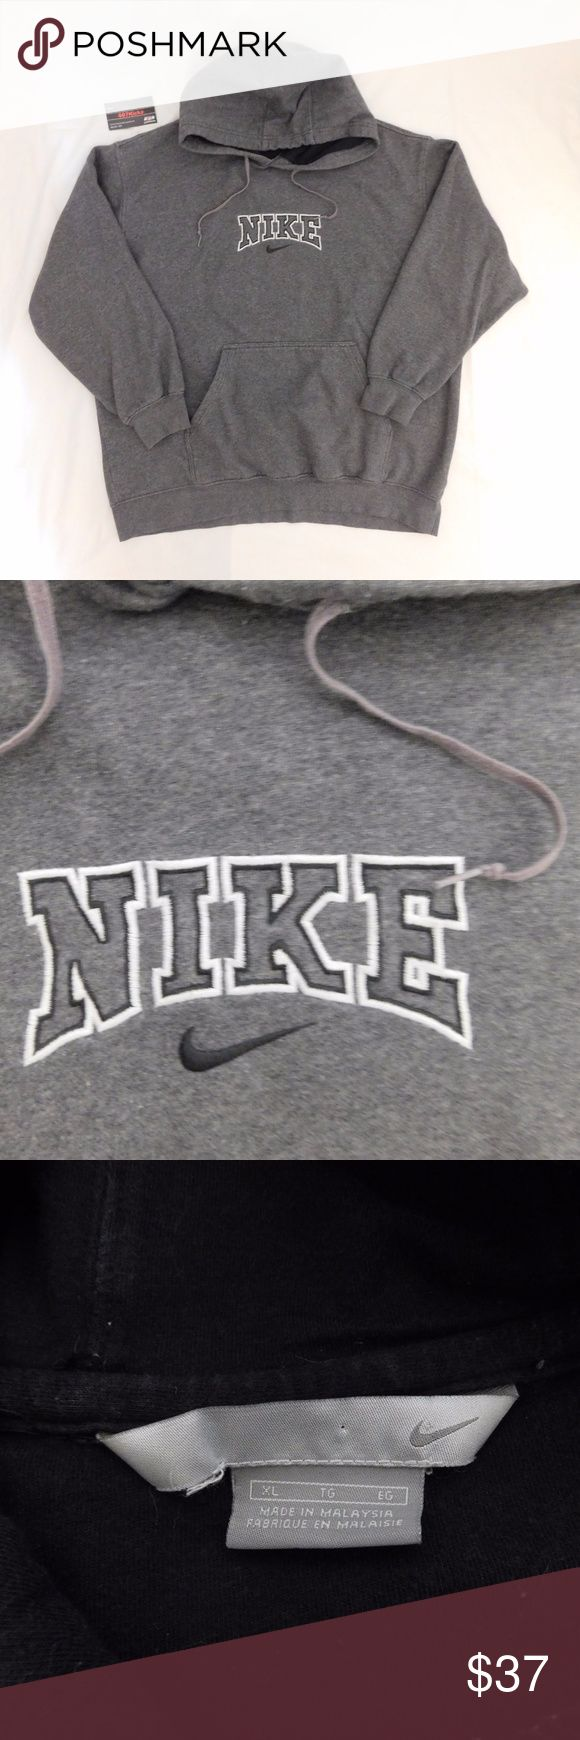 Embroidered Nike Logo Gray Hoodie USED Vintage Nike Embroidered Spellout Swoosh Logo Gray Hooded Sweatshirt | MENS Size XL | Good condition, minor fading  For Discounts Follow Me on Instagram @407vintage !  KEYWORDS/TAGS: ultra boost , Tommy Hilfiger , Polo Sport , Nautica , NMD , supreme , kith , bred , adidas , banned , french blue , stussy , Maestro , vintage , kaws , solefly , trophy room , box logo , gamma blue , retro jordan , steal , foams , foamposite , rare , nike air , yeezy boost…